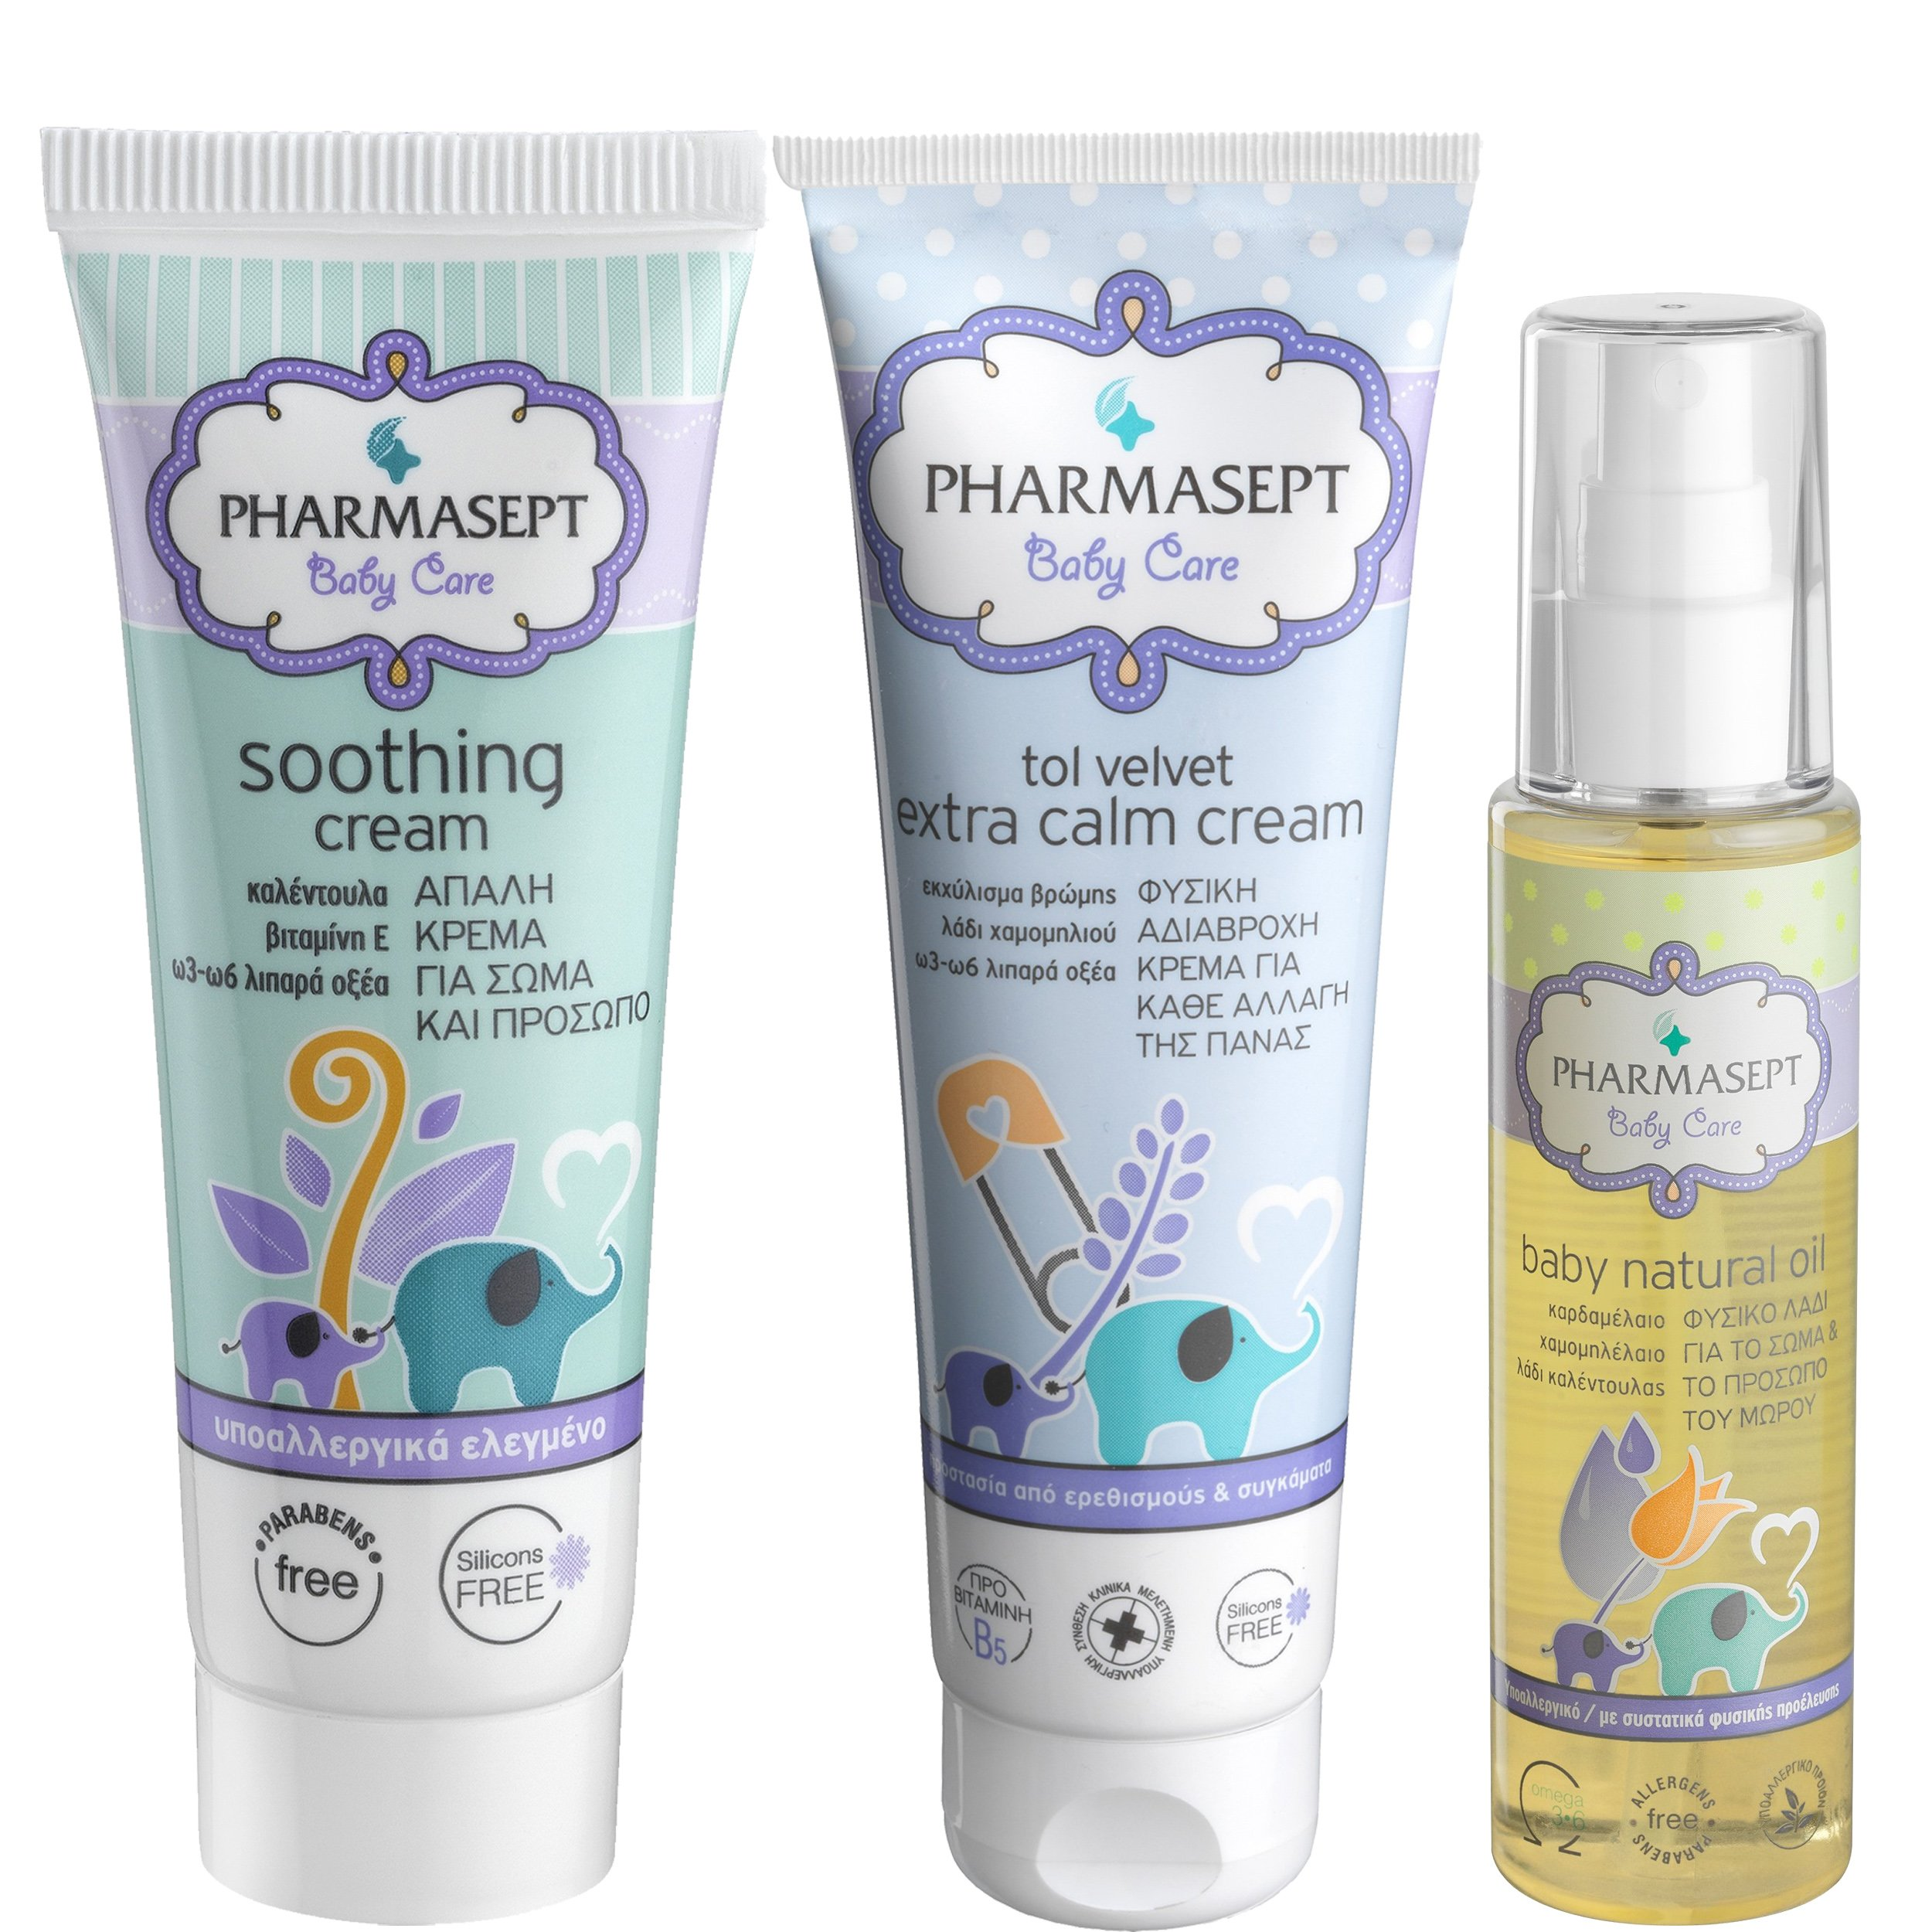 Pharmasept Πακέτο Προσφοράς Tol Velvet Baby Soothing Cream 150ml & Baby Extra Calm Cream 150ml & Baby Natural Oil 100ml